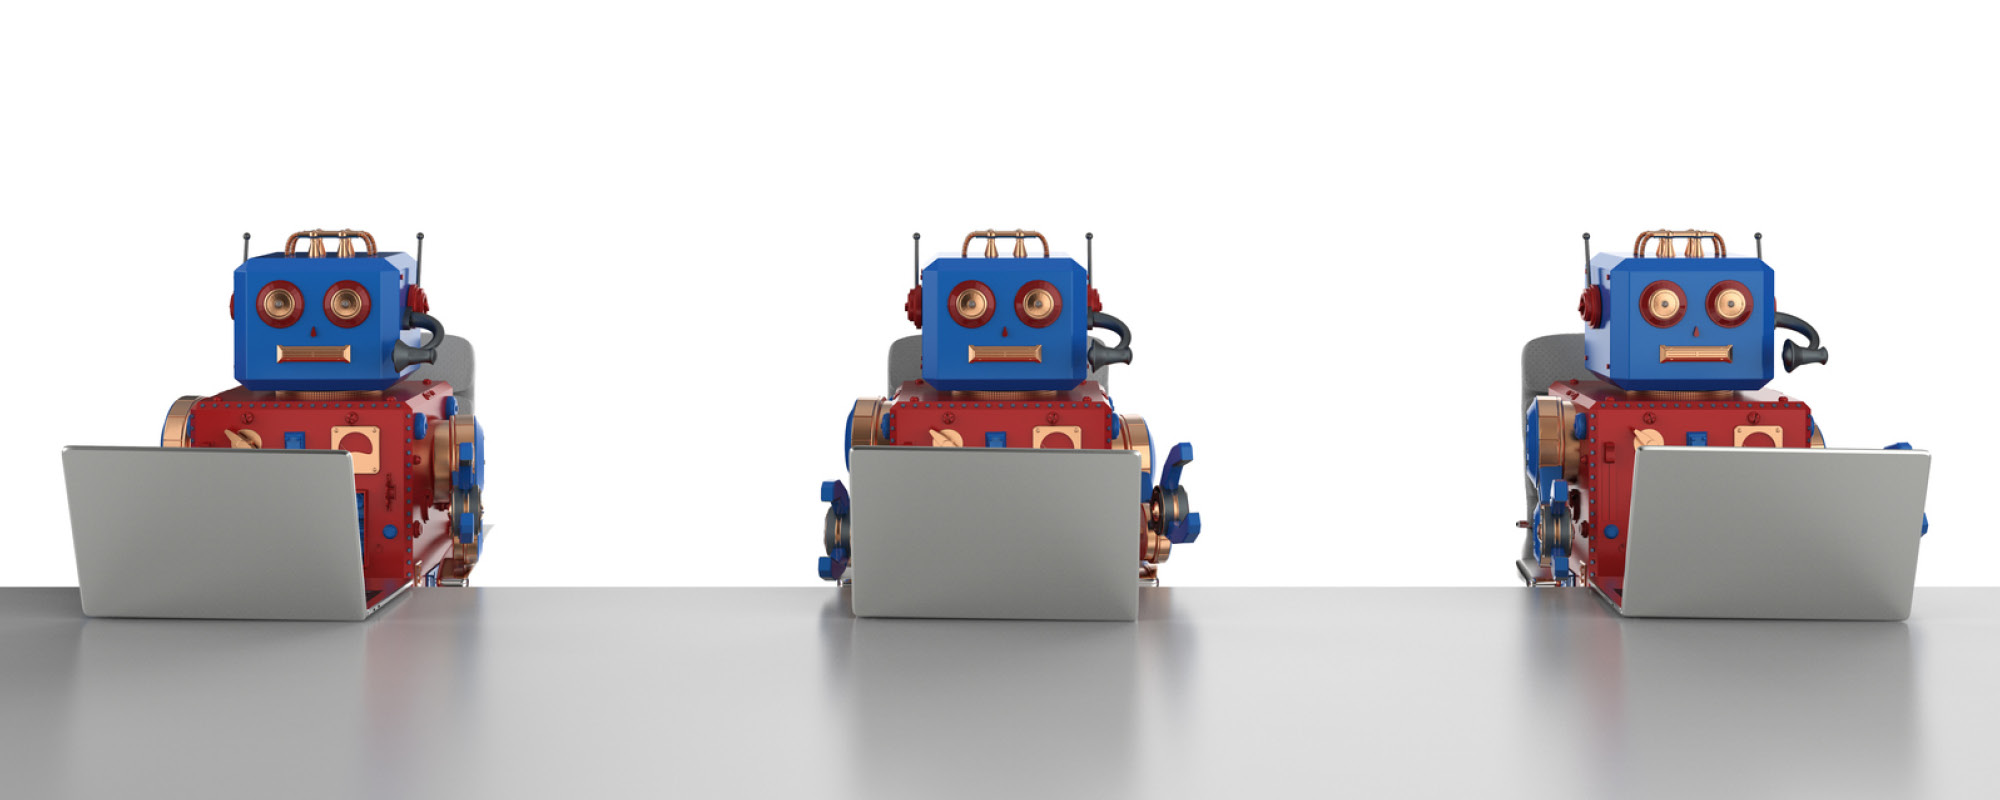 Importance of process documentation in RPA